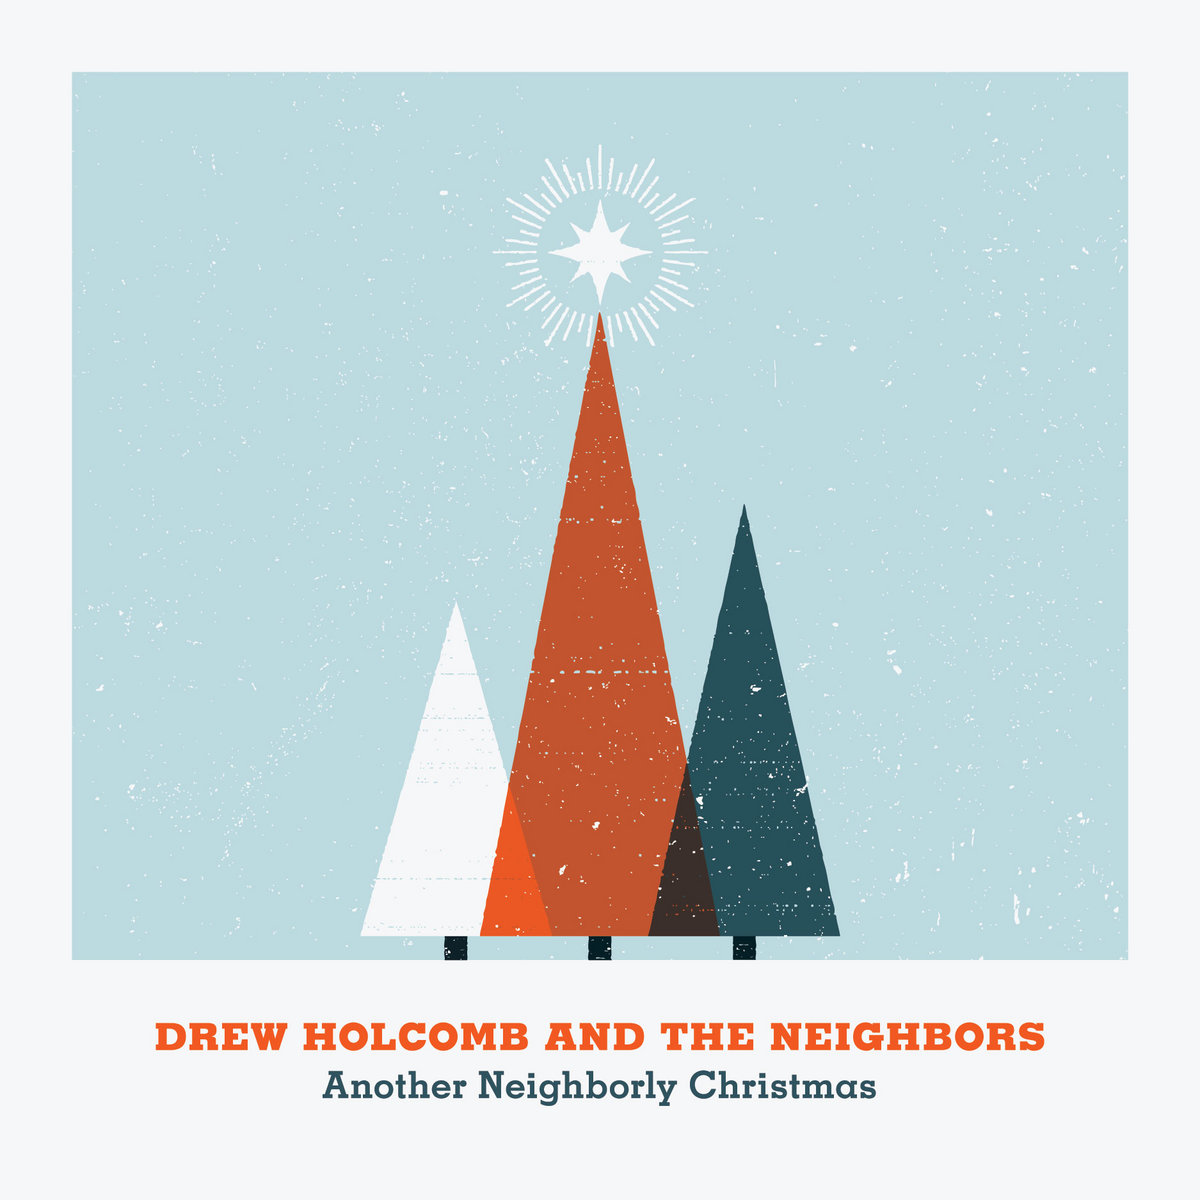 Christmas Album Cover Art.Another Neighborly Christmas Drew Holcomb And The Neighbors